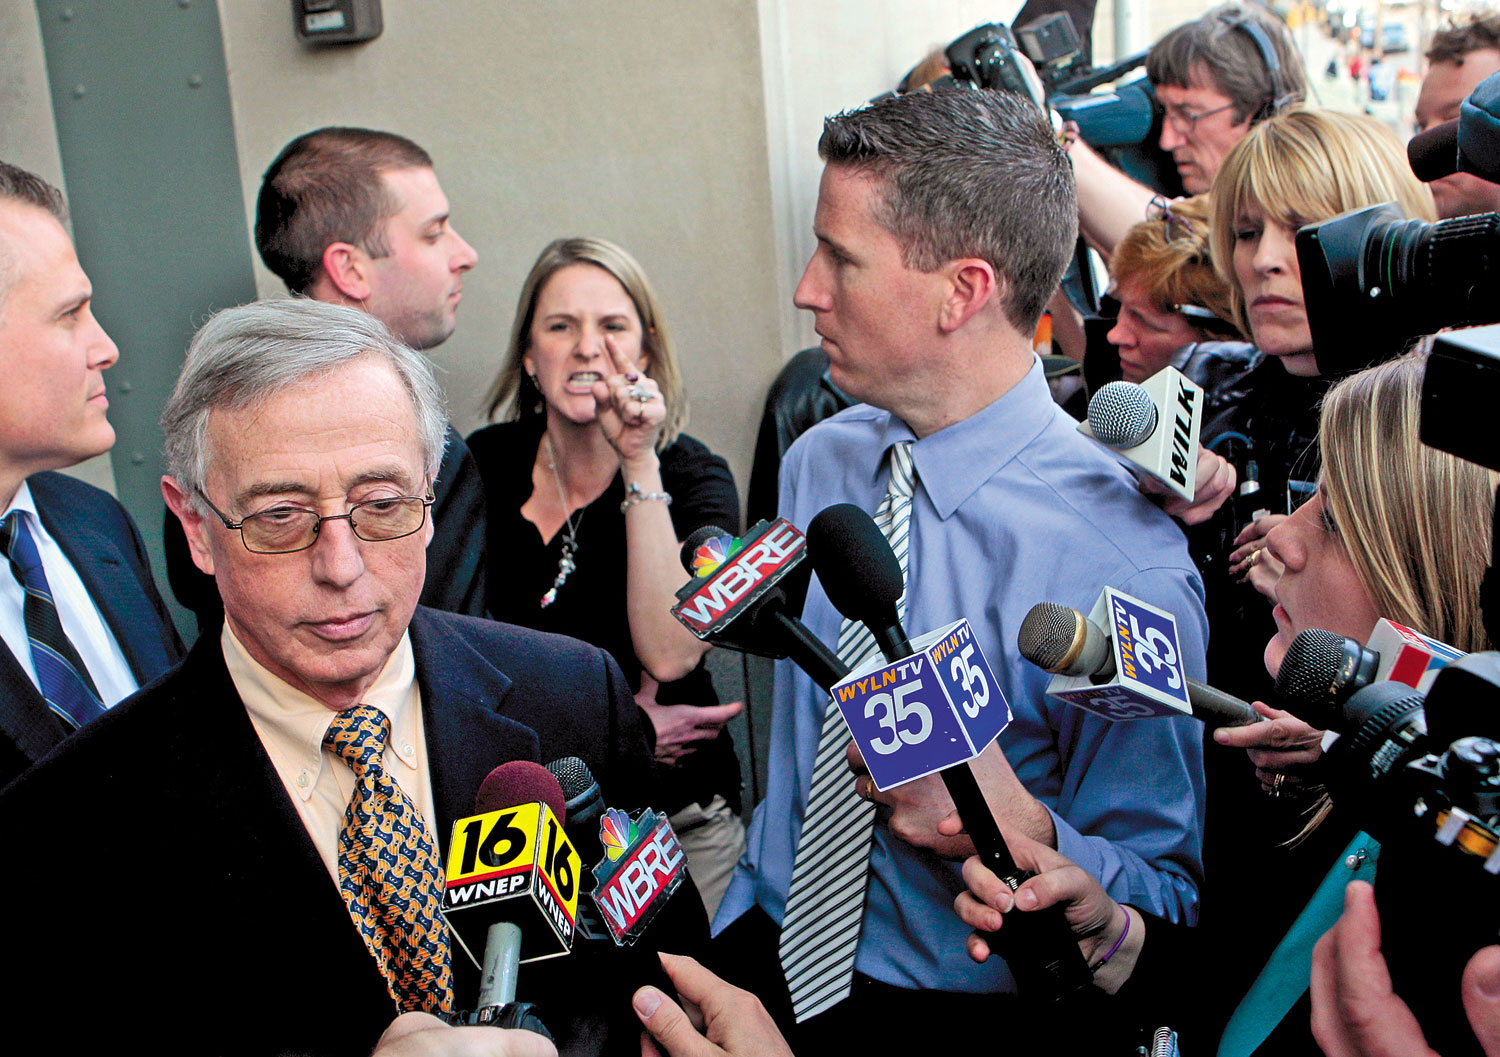 Mark-Ciavarella-left-and-Sandy-Fonzo-center-outside-a-courthouse